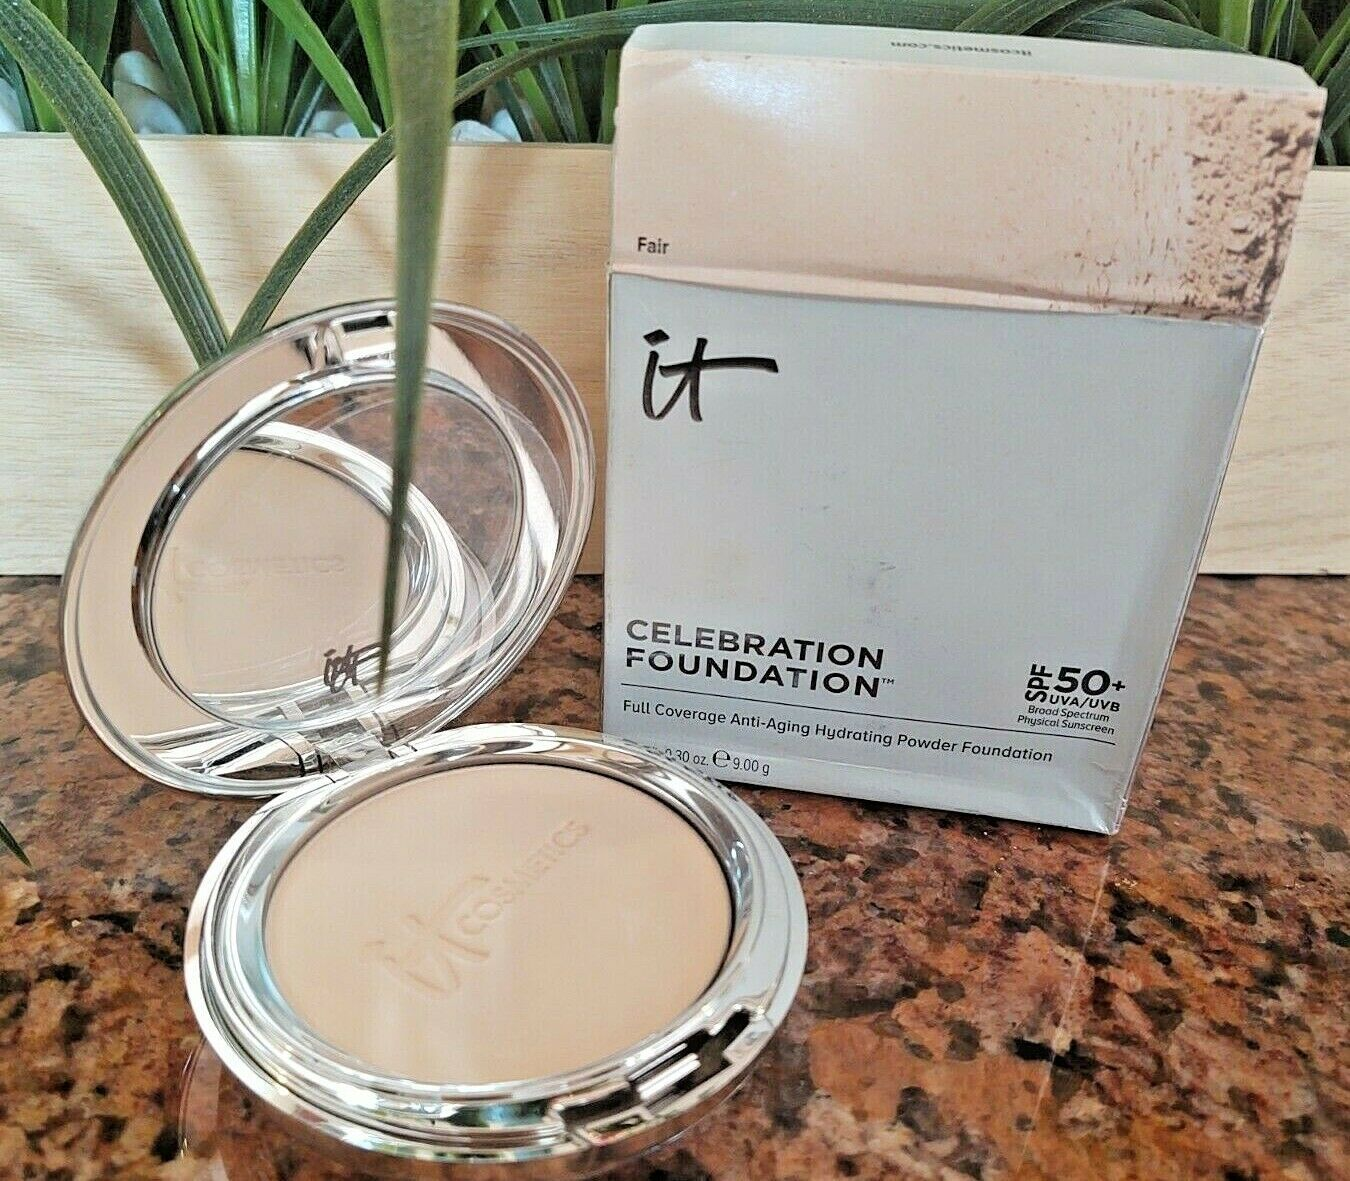 Primary image for IT Cosmetics CELEBRATION FOUNDATION SPF50+ Anti Aging Full Cov Powder FAIR .30oz